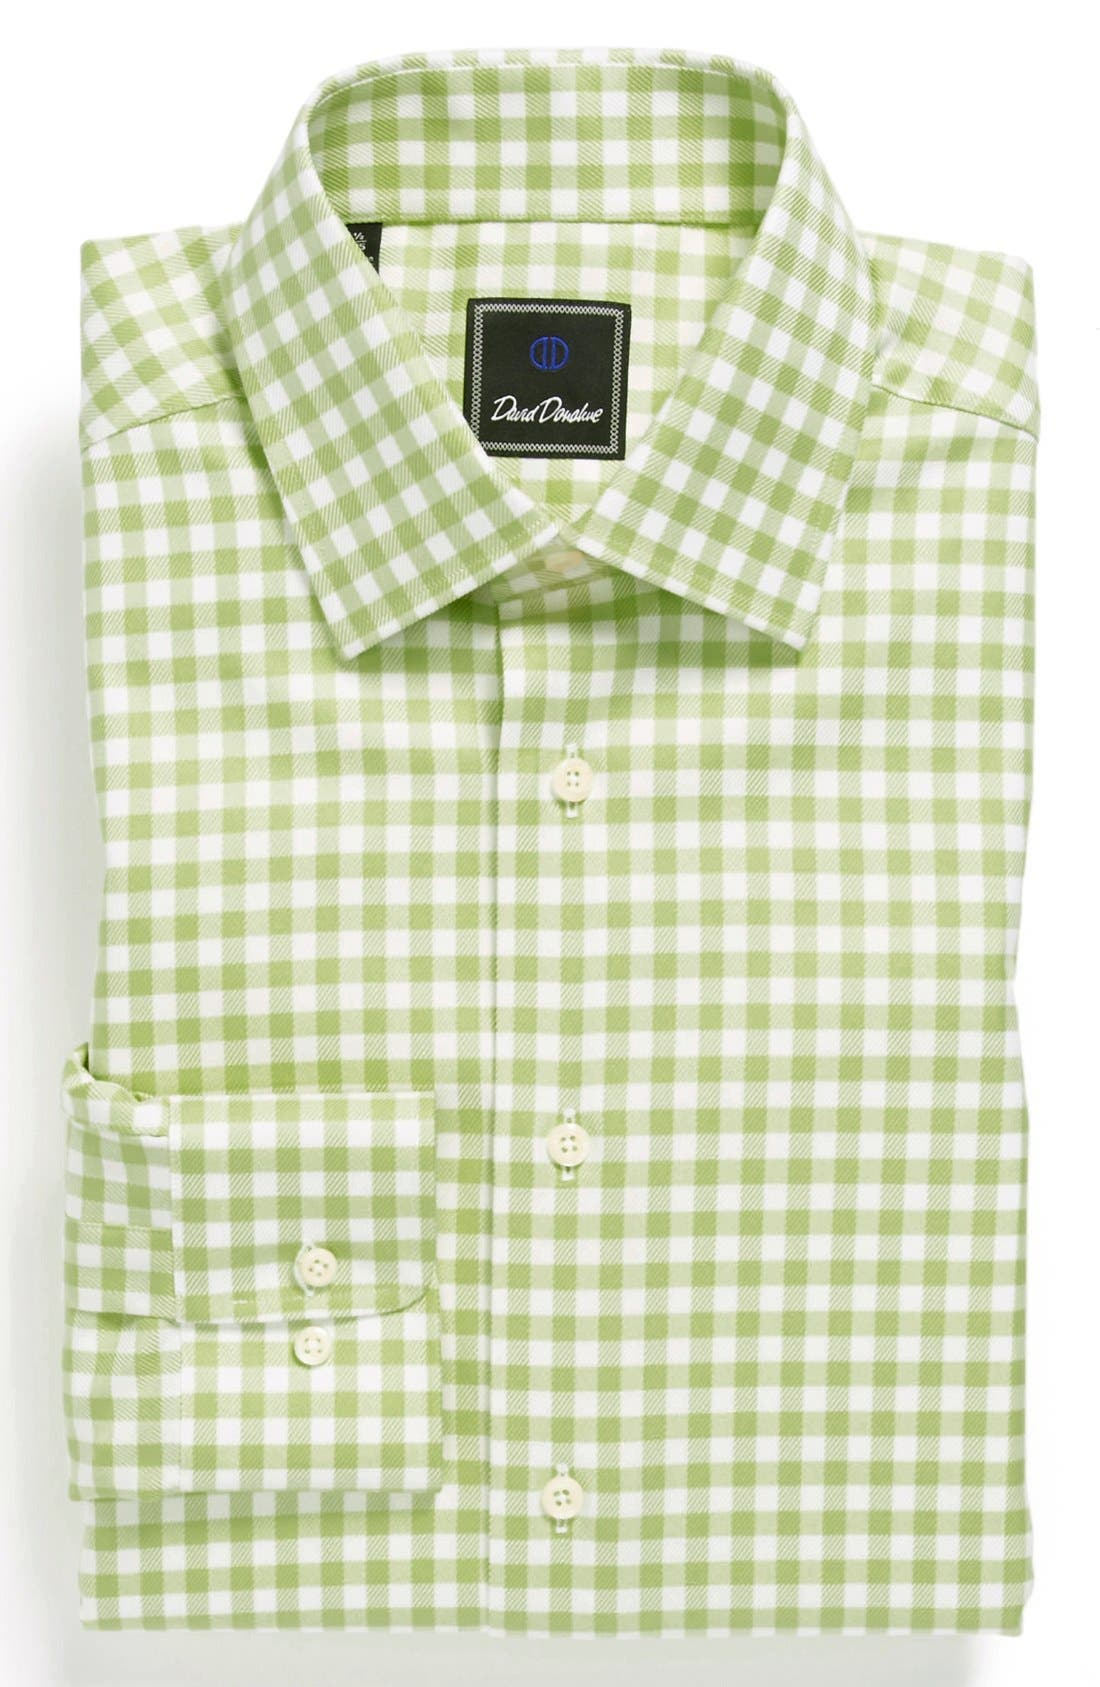 Main Image - David Donahue Twill Gingham Regular Fit Dress Shirt